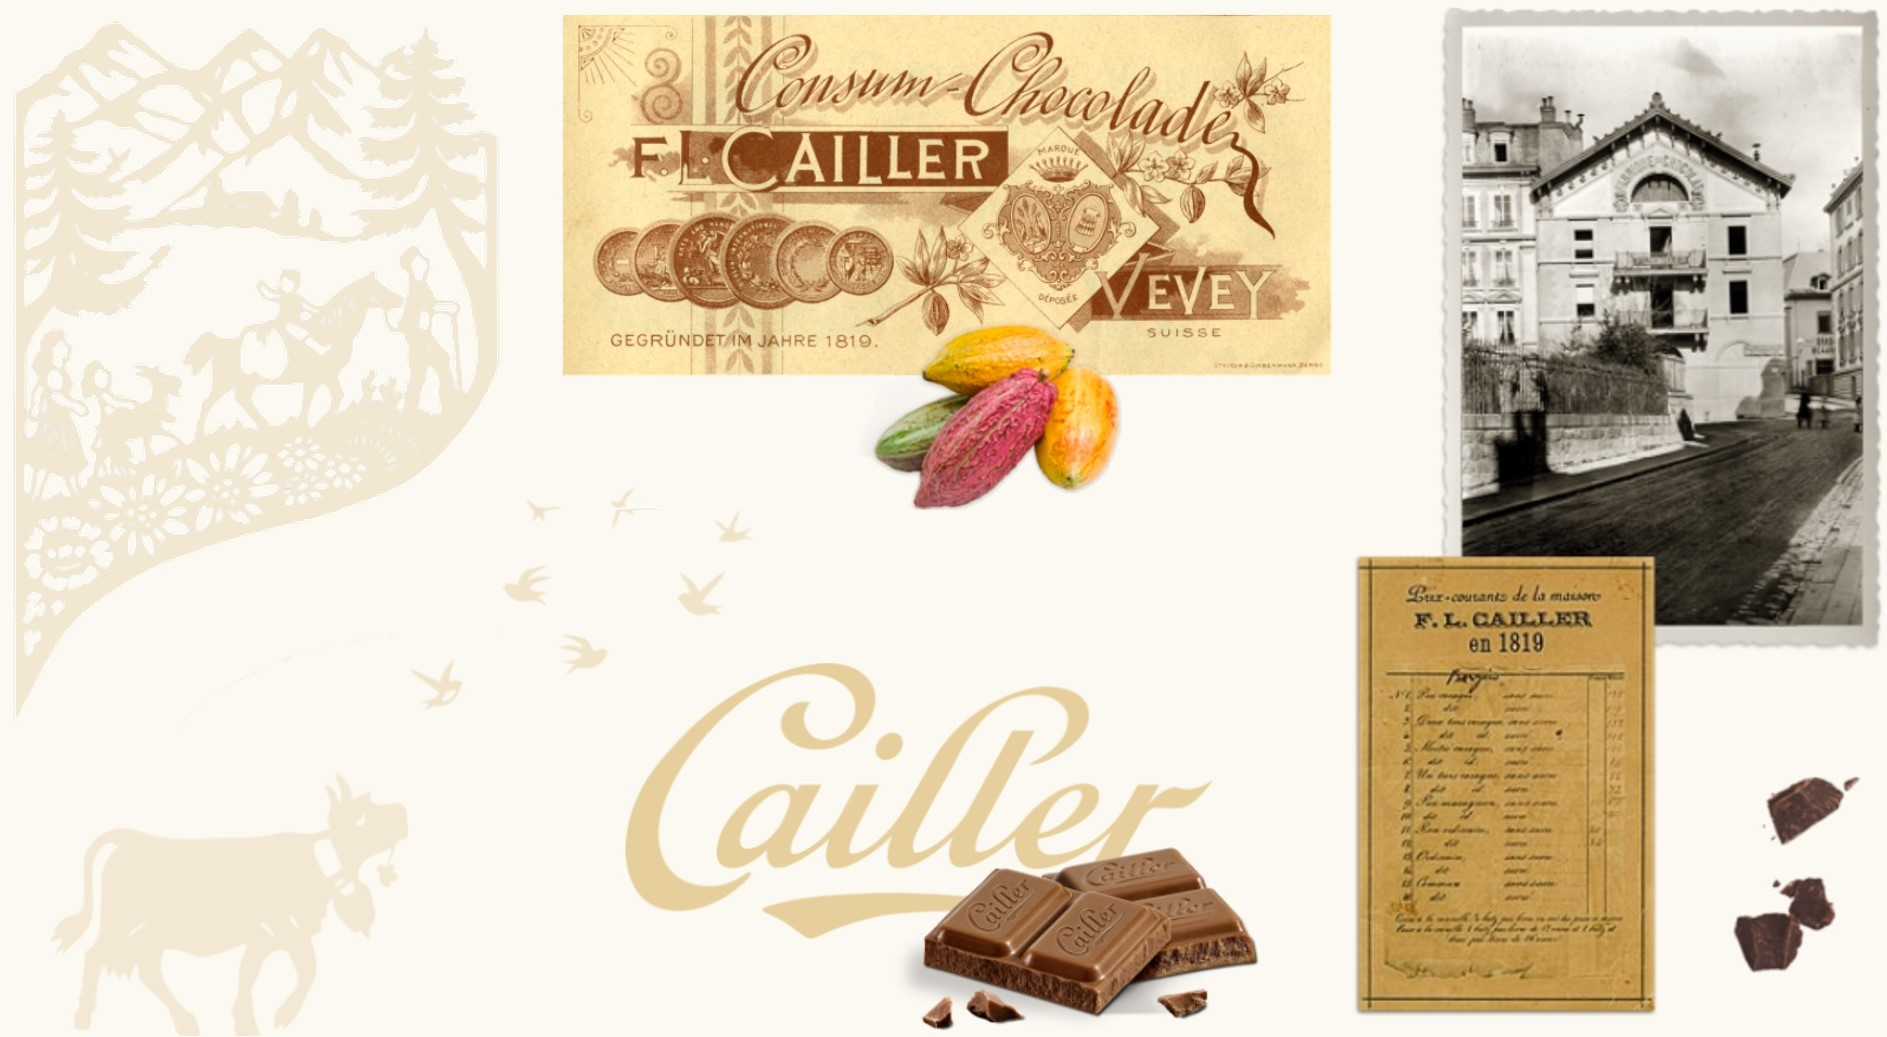 cailler-banner-with-history.jpg